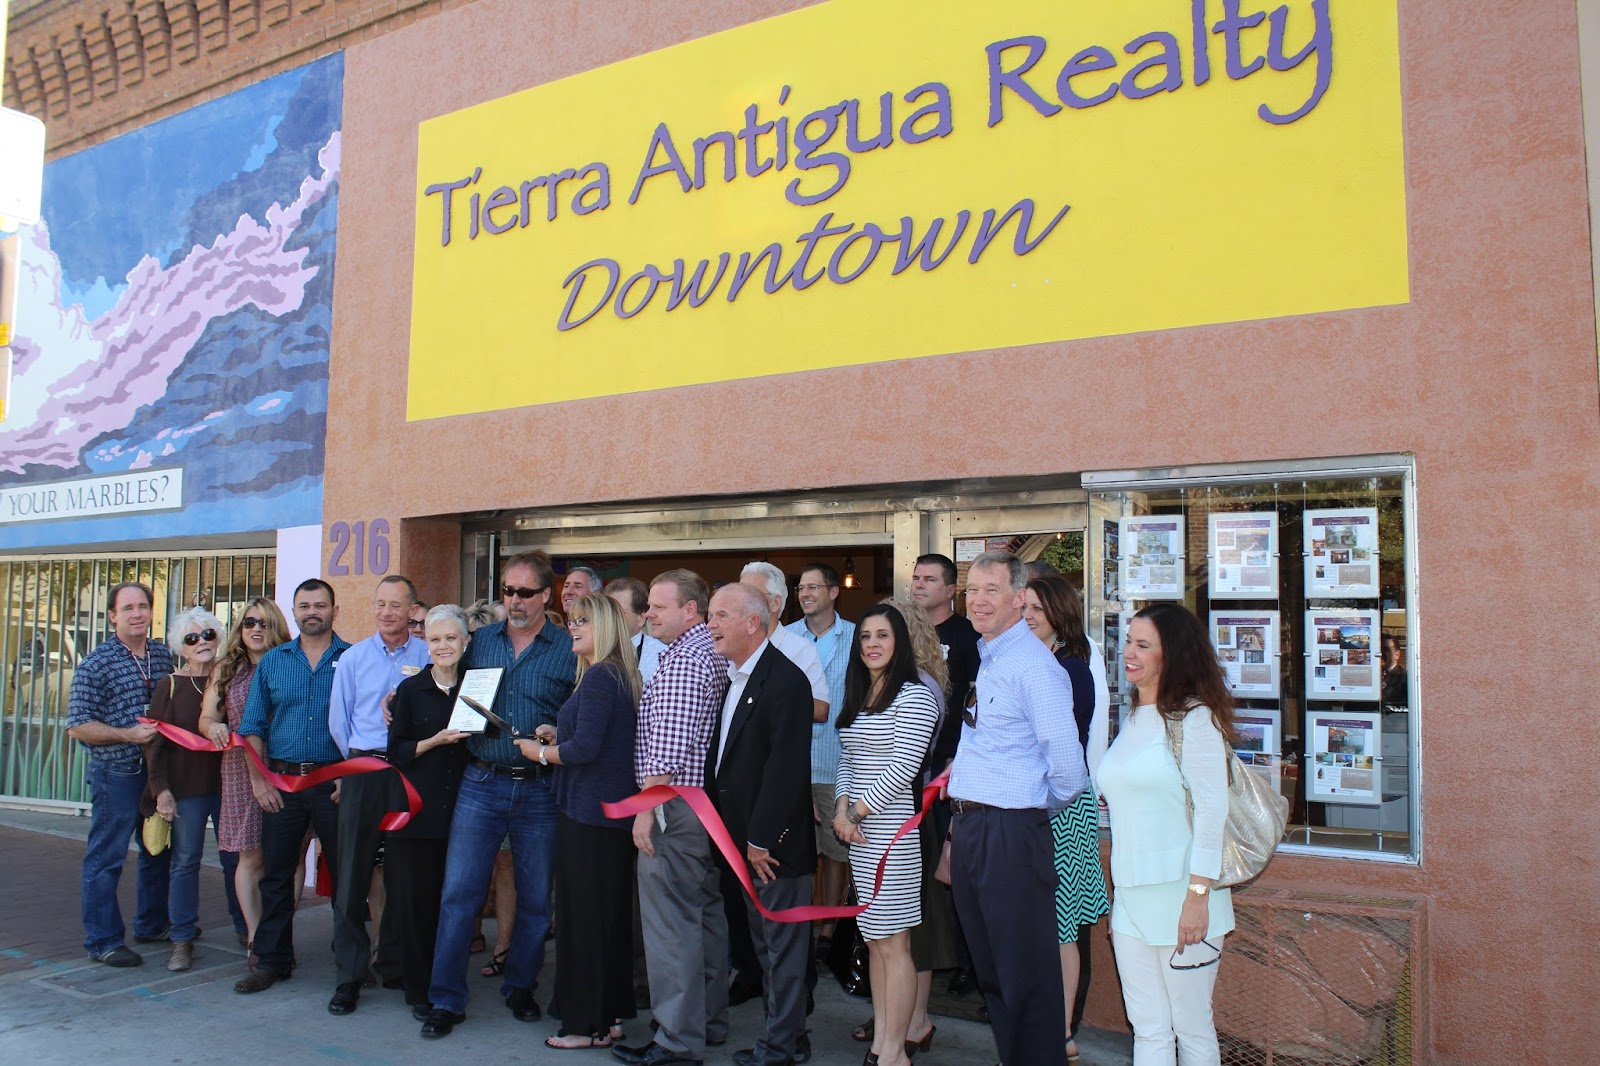 Congratulations to Tierra Antigua Realty, located at 216 E. Congress Street, on the opening of their 6th location in southern Arizona! Tierra Antigua Realty celebrated the grand re-opening of its downtown Tucson office location on March 18. After the renovations, this office now provides a luxurious space for agents and their clients to meet. Tierra Antigua is Southern Arizona's largest locally-owned real estate company and has six convenient locations throughout Tucson, Green Valley and Sierra Vista.